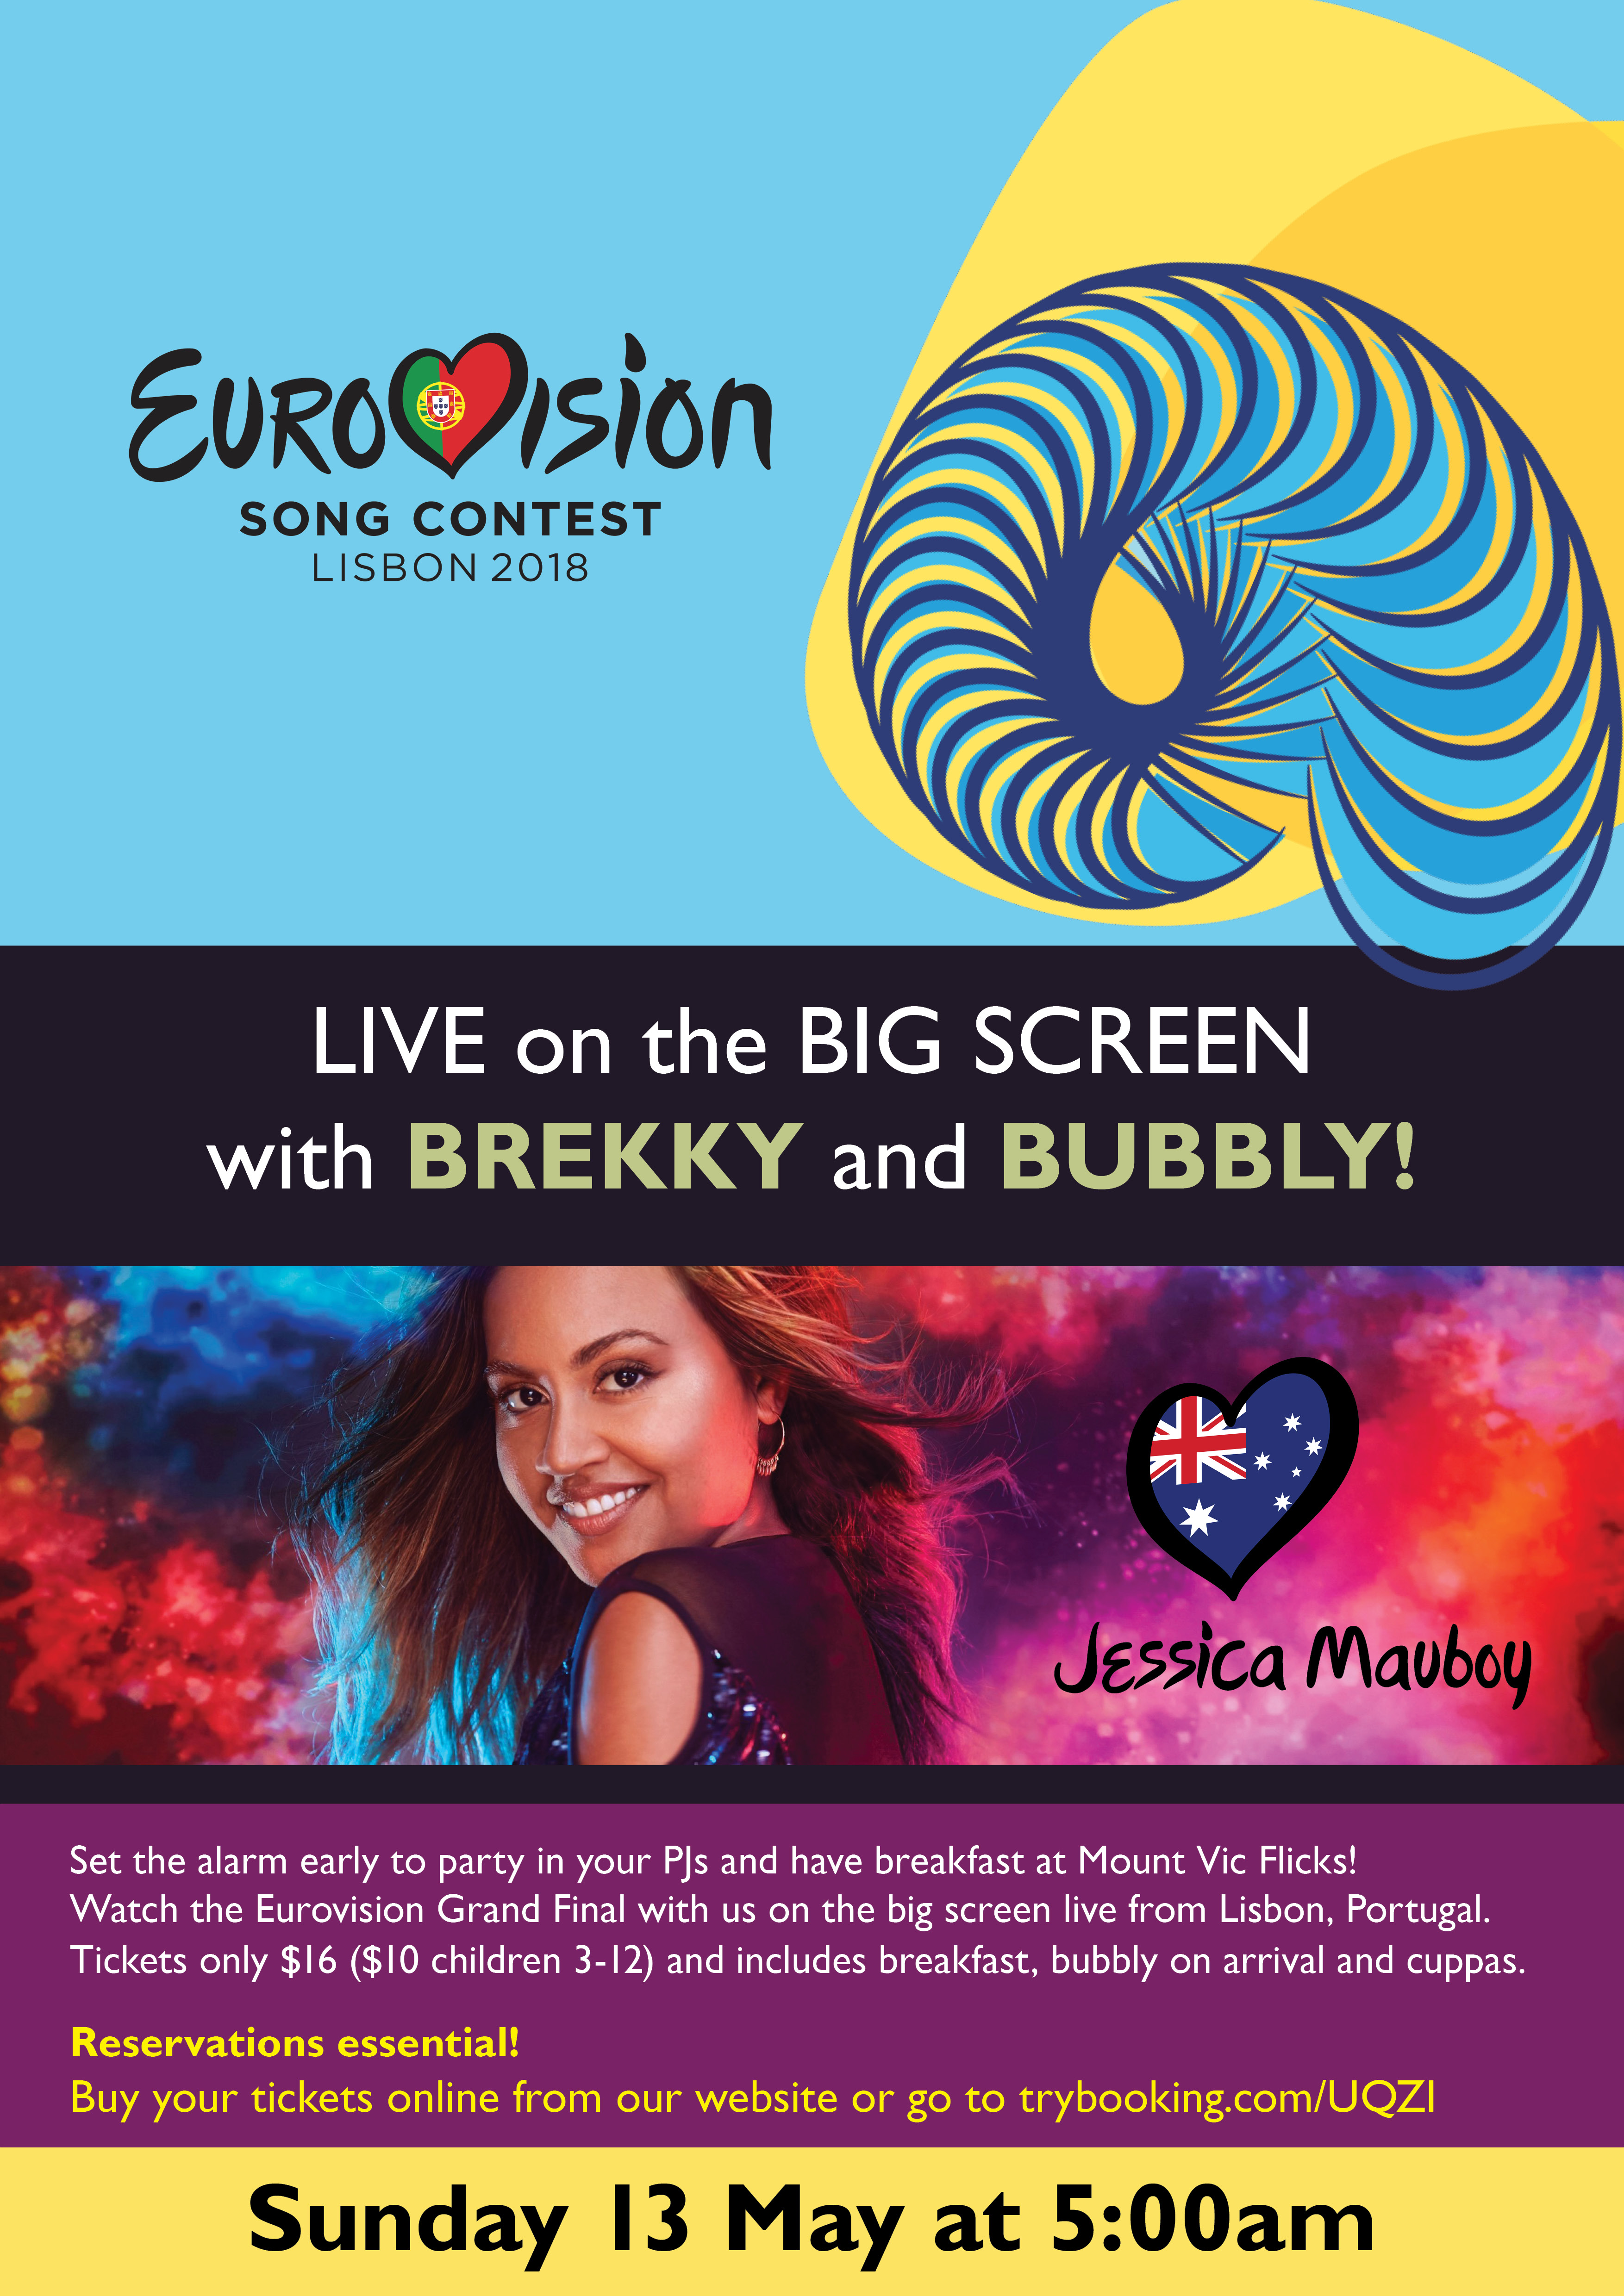 Eurovision 2018 Final Live with Brekky and Bubbly! movie poster